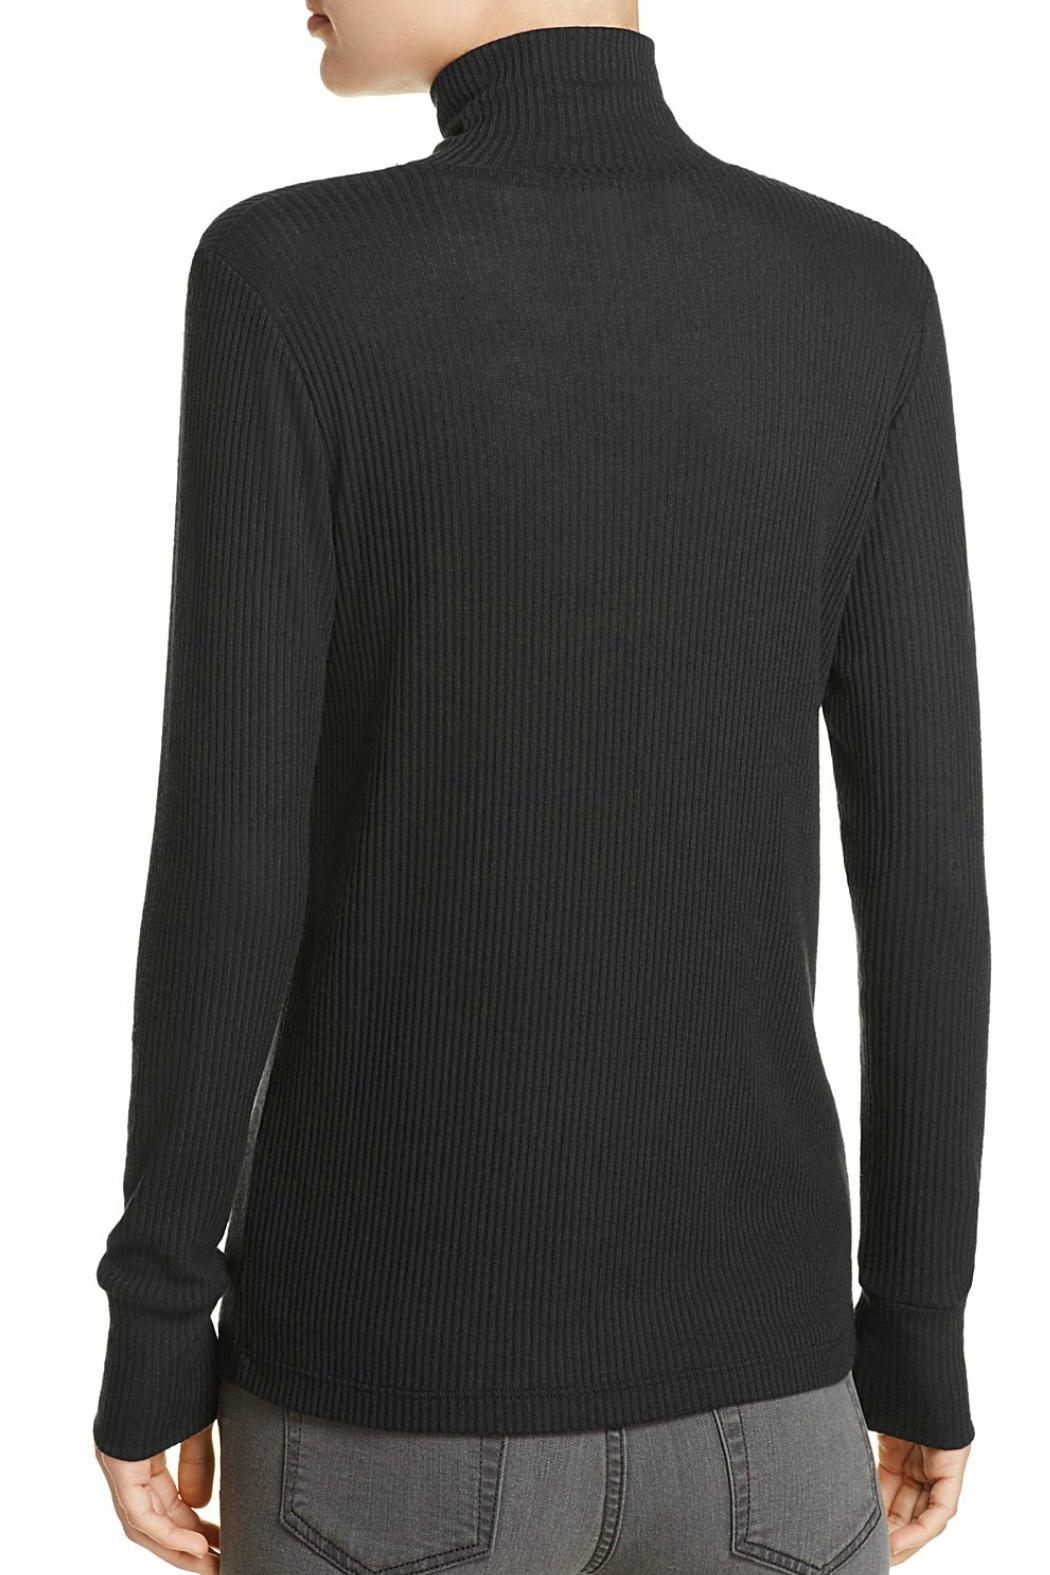 LNA Lace Up Turtleneck Top - Front Full Image